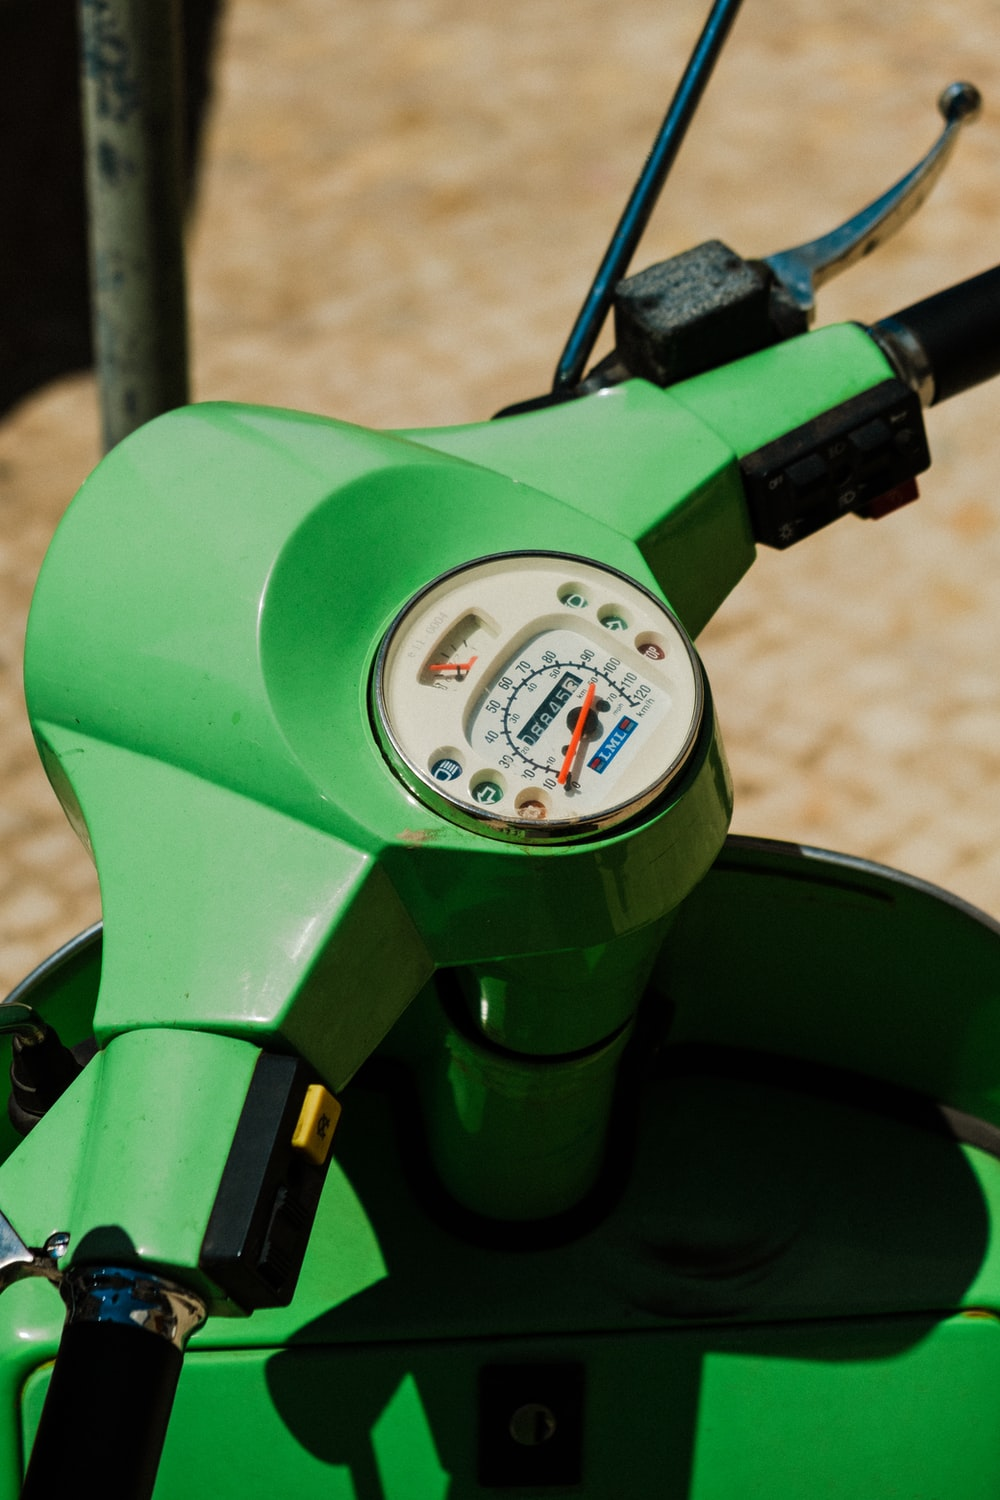 green motorcycle with white gauge